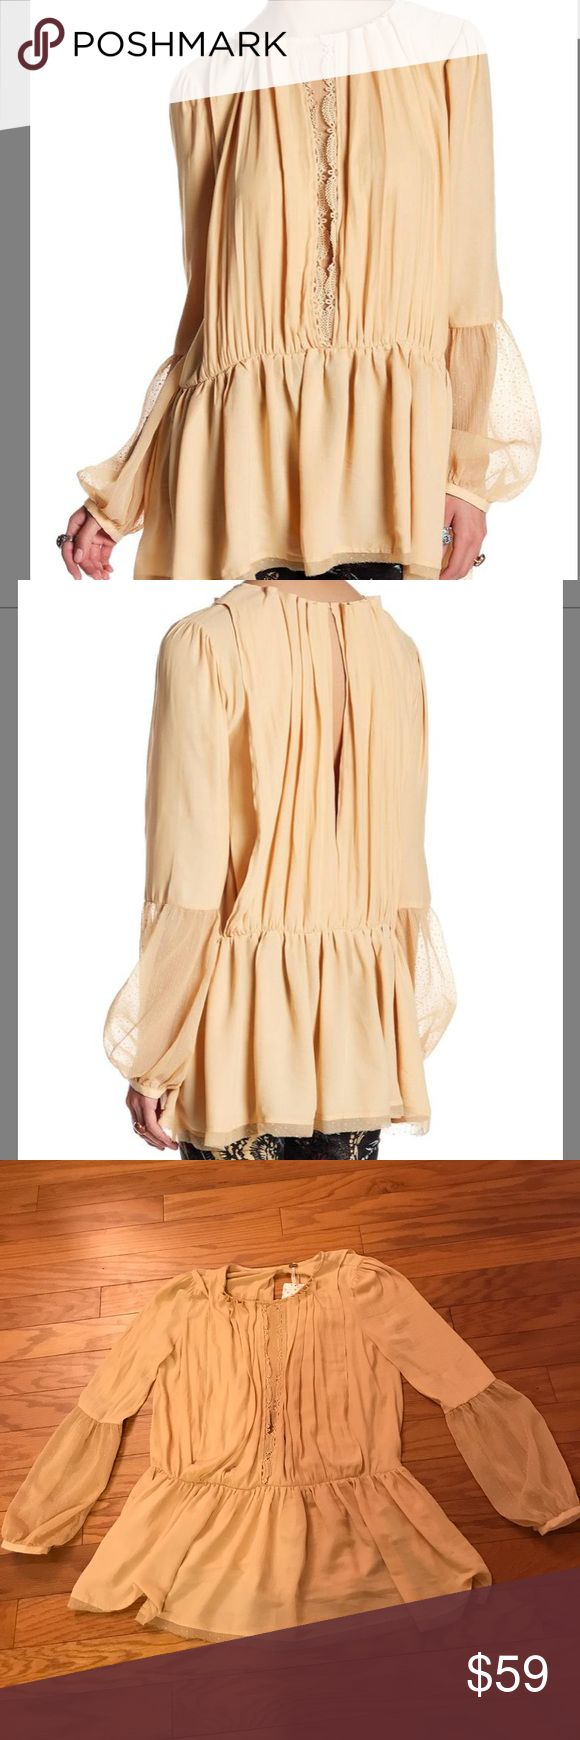 Free People Soul Serene Peplum Top Free People Soul Serene Peplum Top. Size Small. Crew neck. Sheer sleeves. Back keyhole closure. Pleated throughout with Peplum style hem. Hits below hip. See stock photo for color. NWT! 100% polyester. Free People Tops